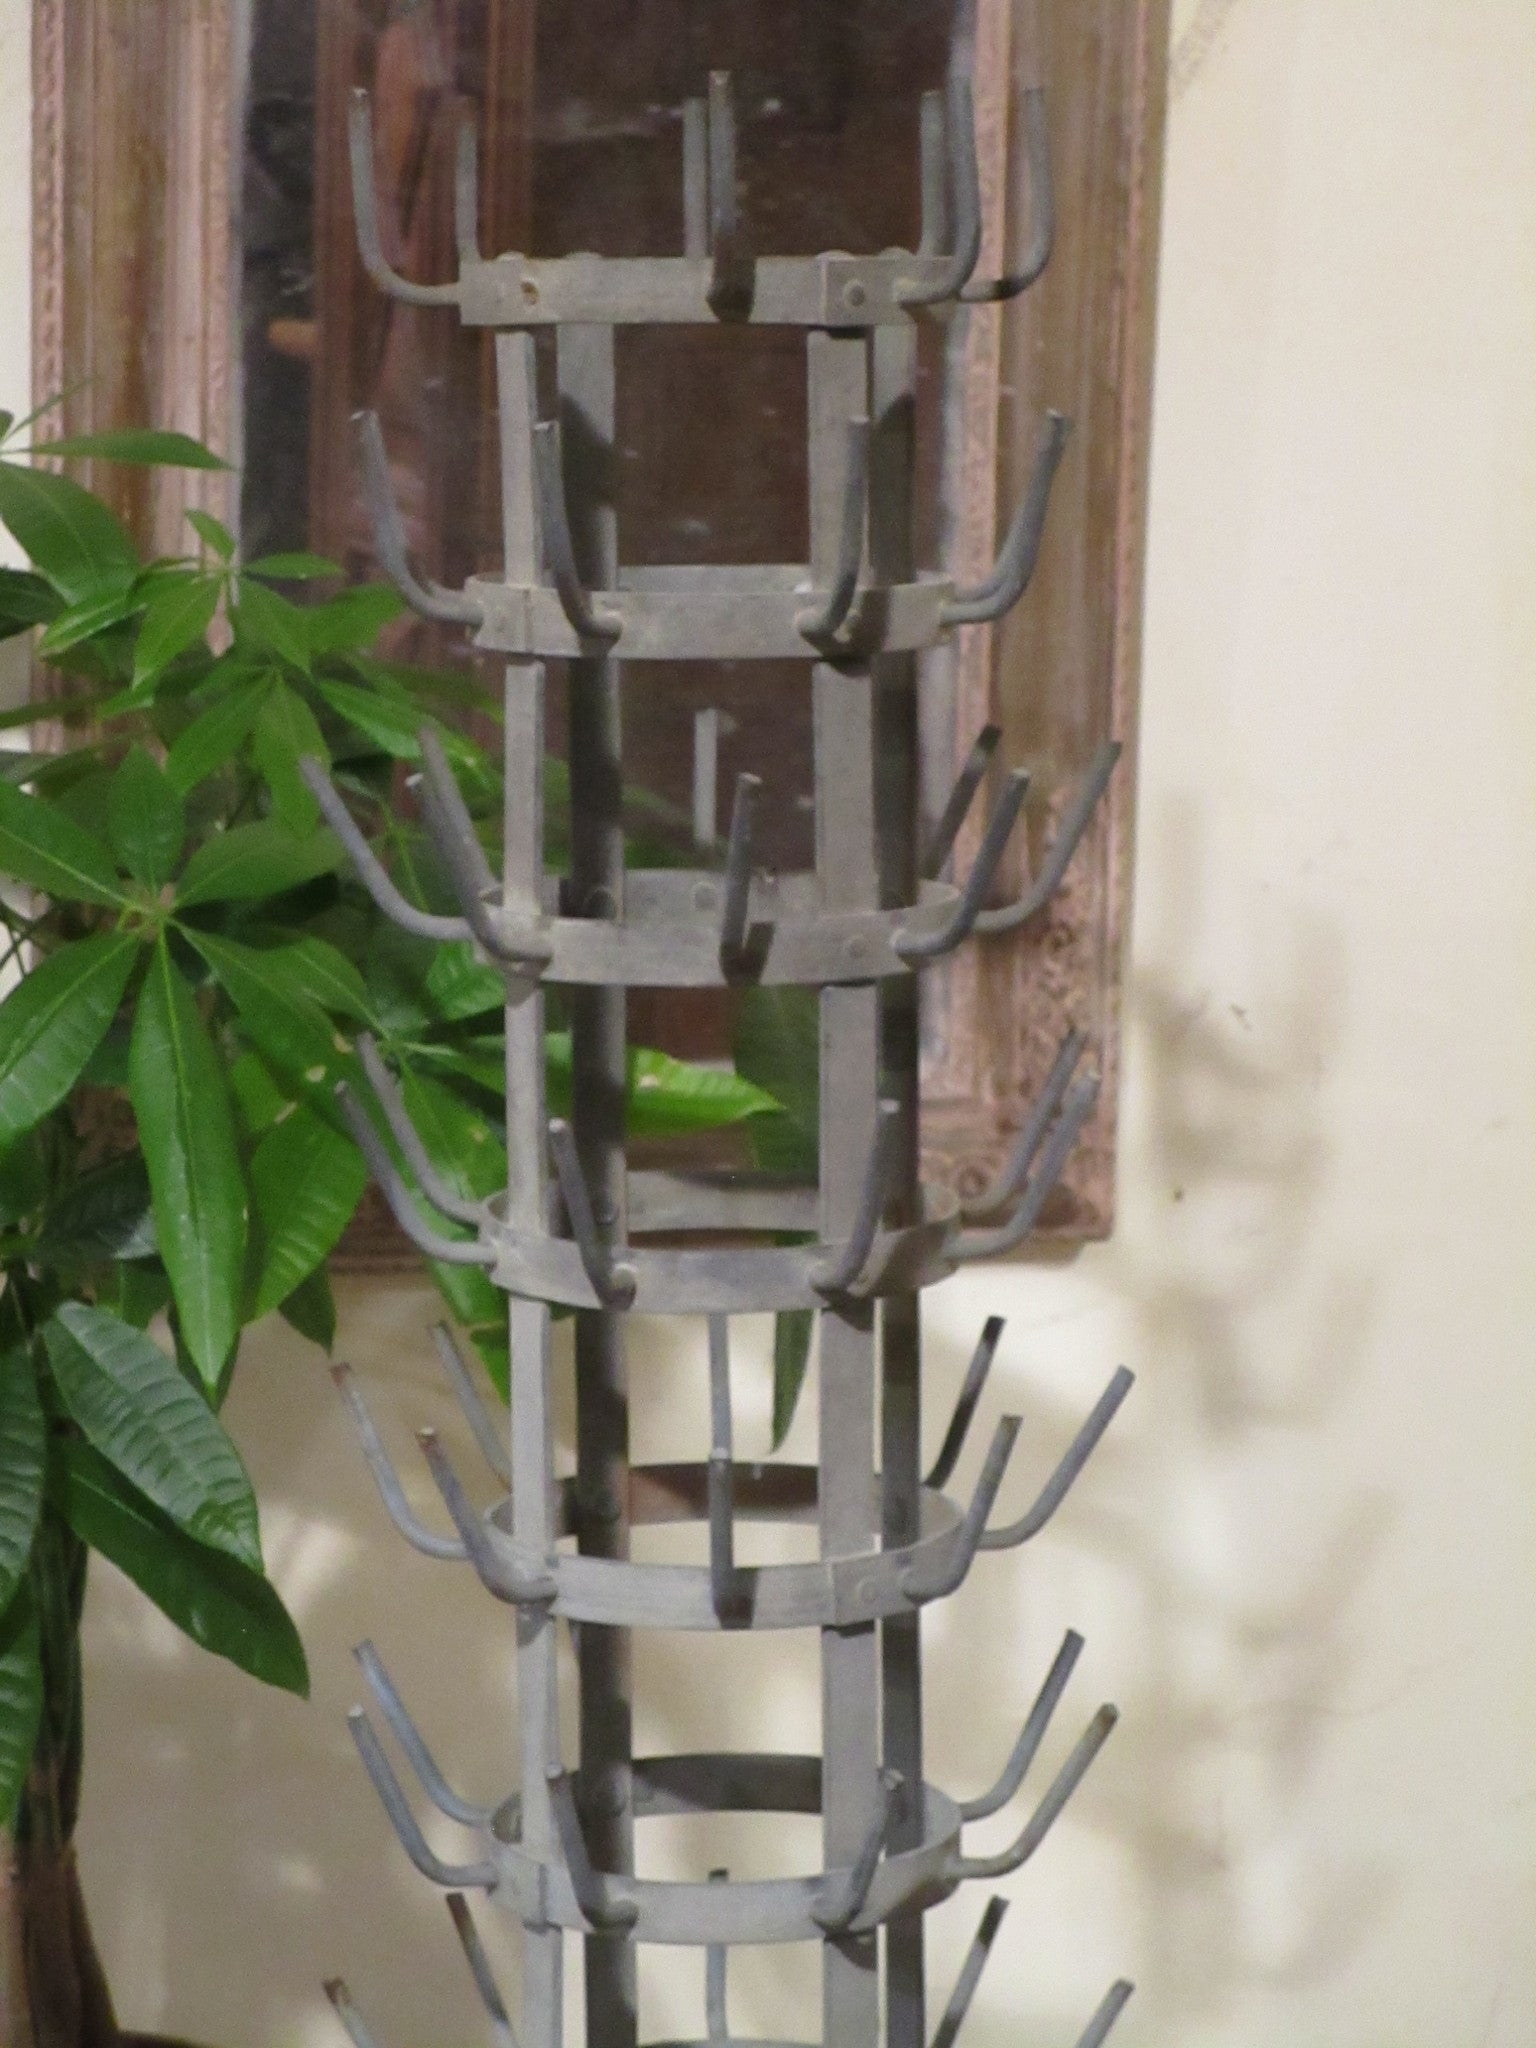 Top detail French bottle tree galvanized porcupine